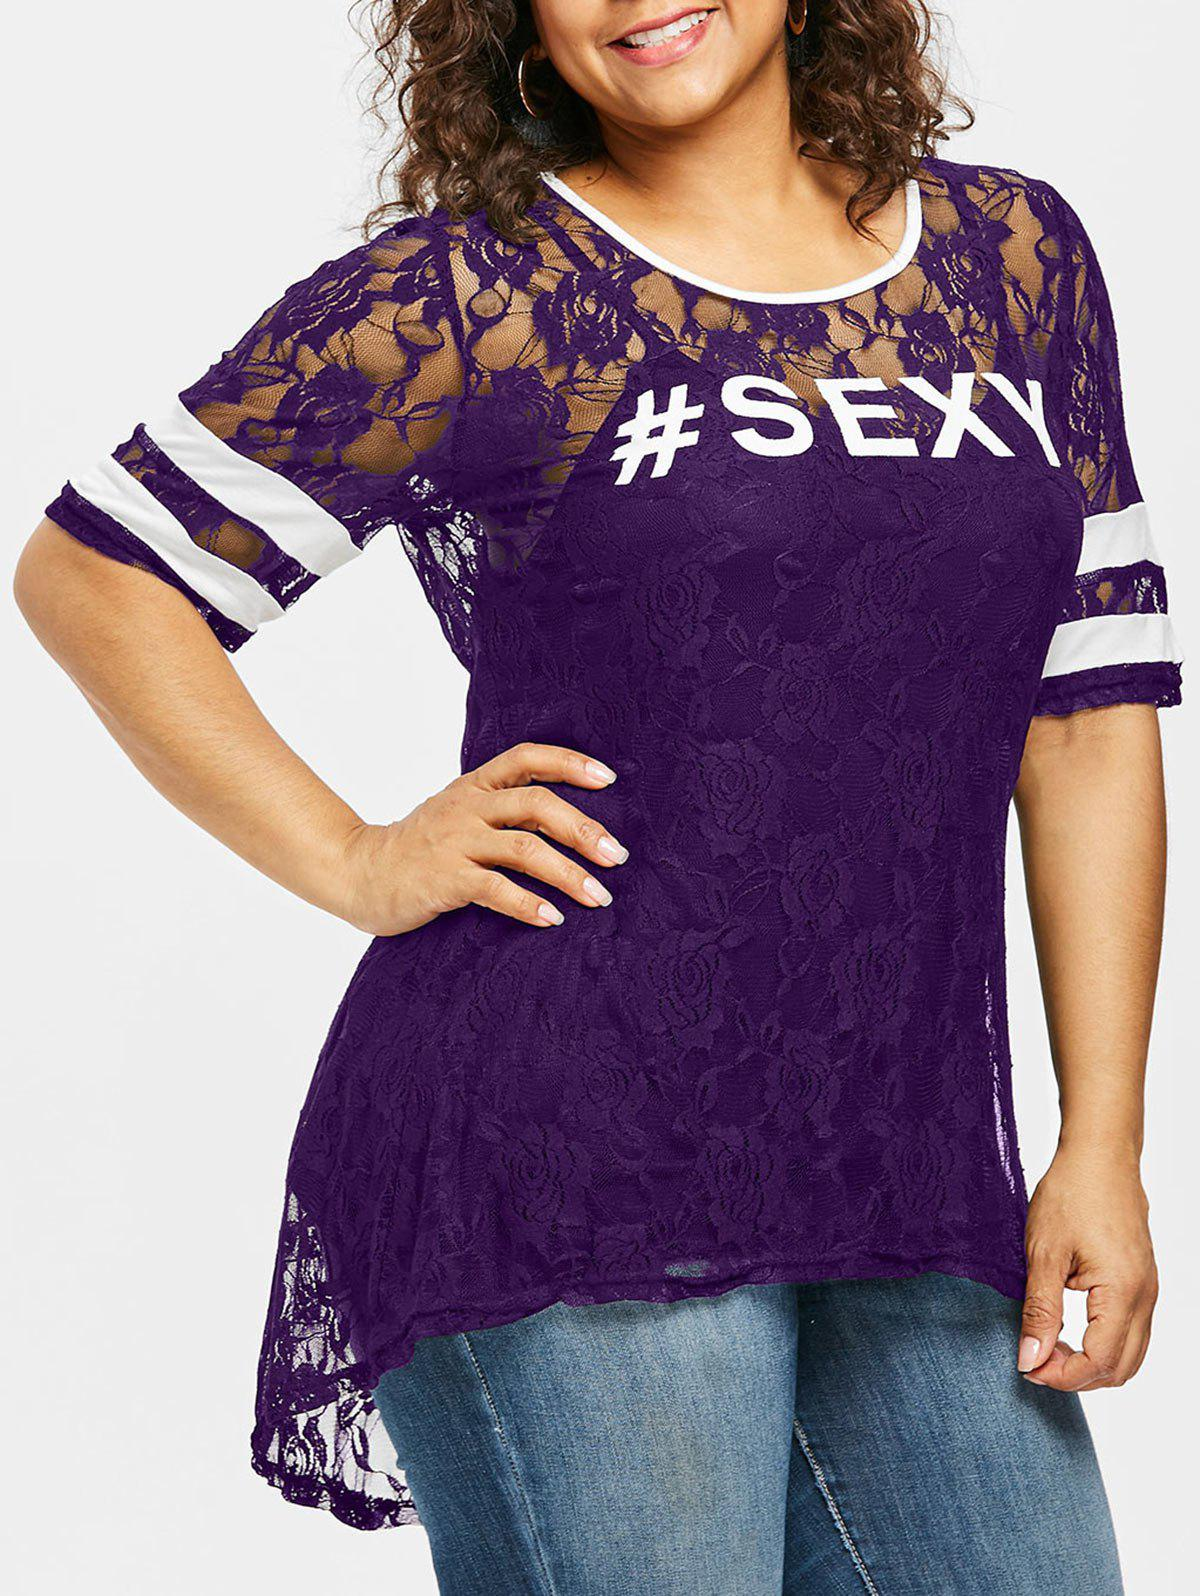 Plus Size Contrast Trim Floral Lace T-shirt - PURPLE IRIS 5X